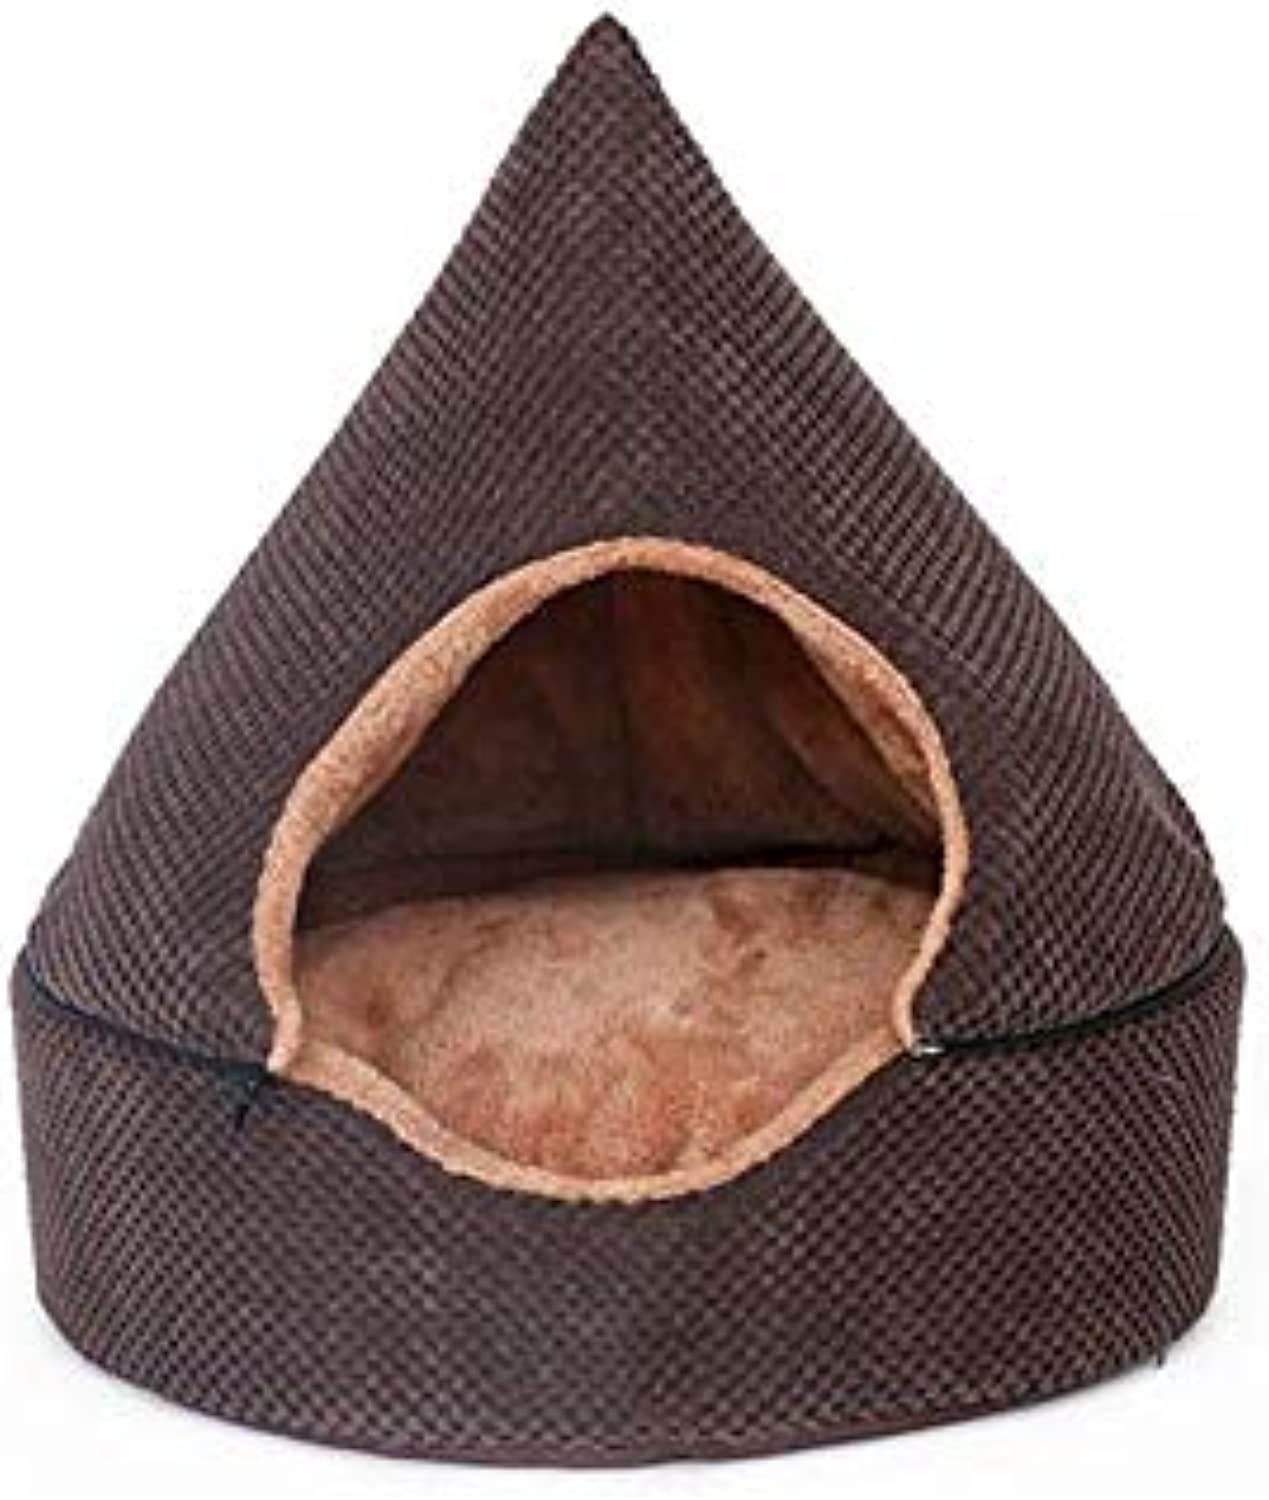 Dog Kennel Removable And Washable Yurt Cat Litter Winter Warm Puppies Pet Small Dog House Dog House (color   BROWN, Size   SA)